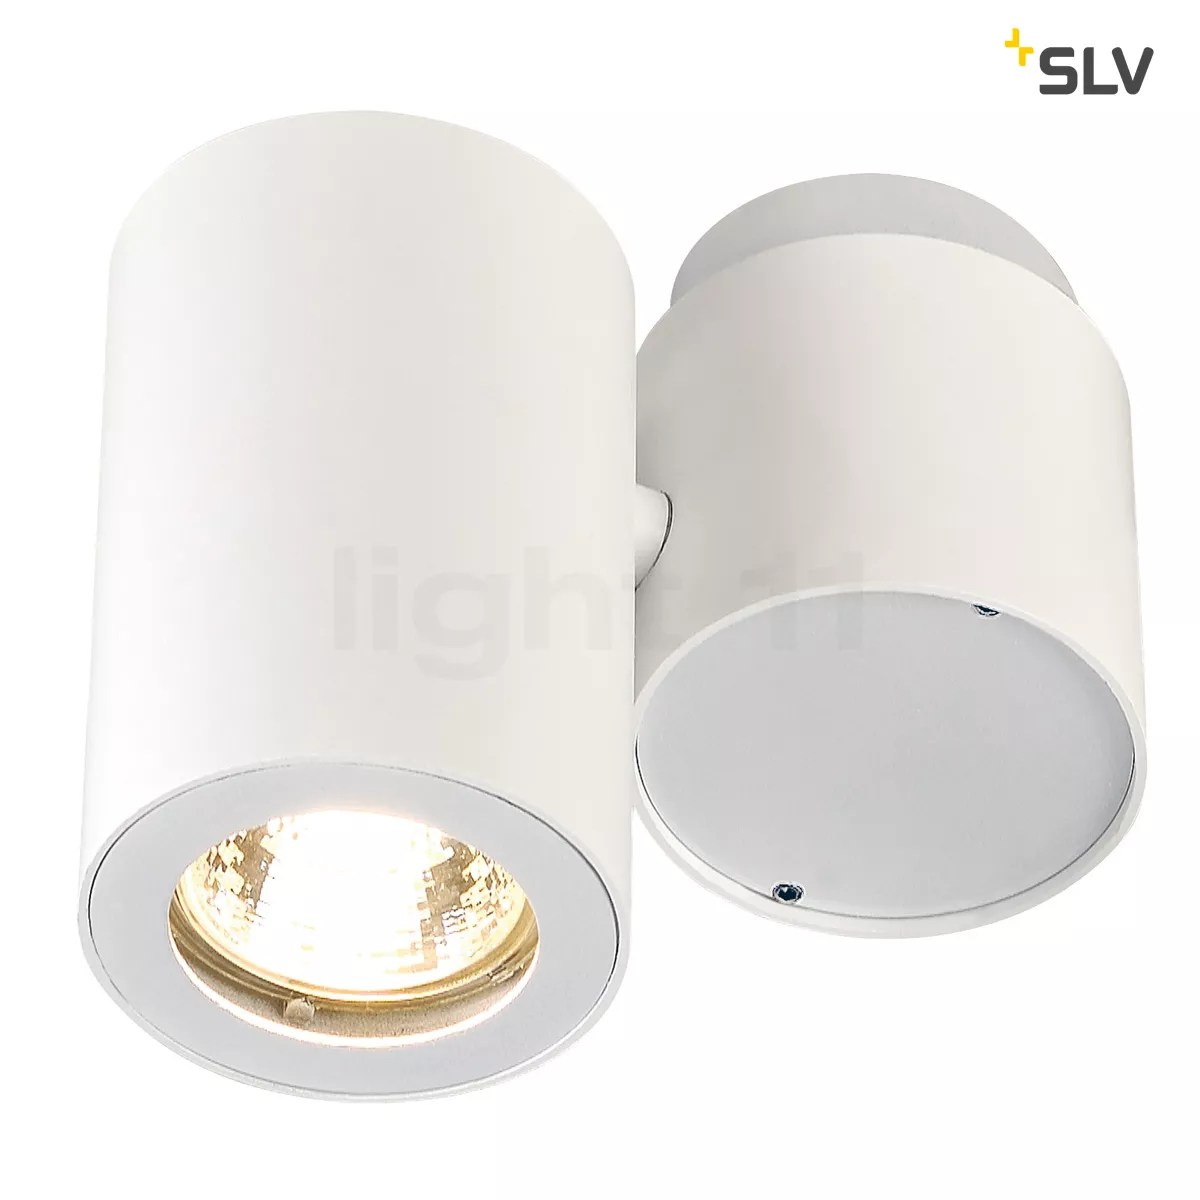 Slv Spot Buy Slv Enola B Spot I Wall And Ceiling Light At Light11 Eu